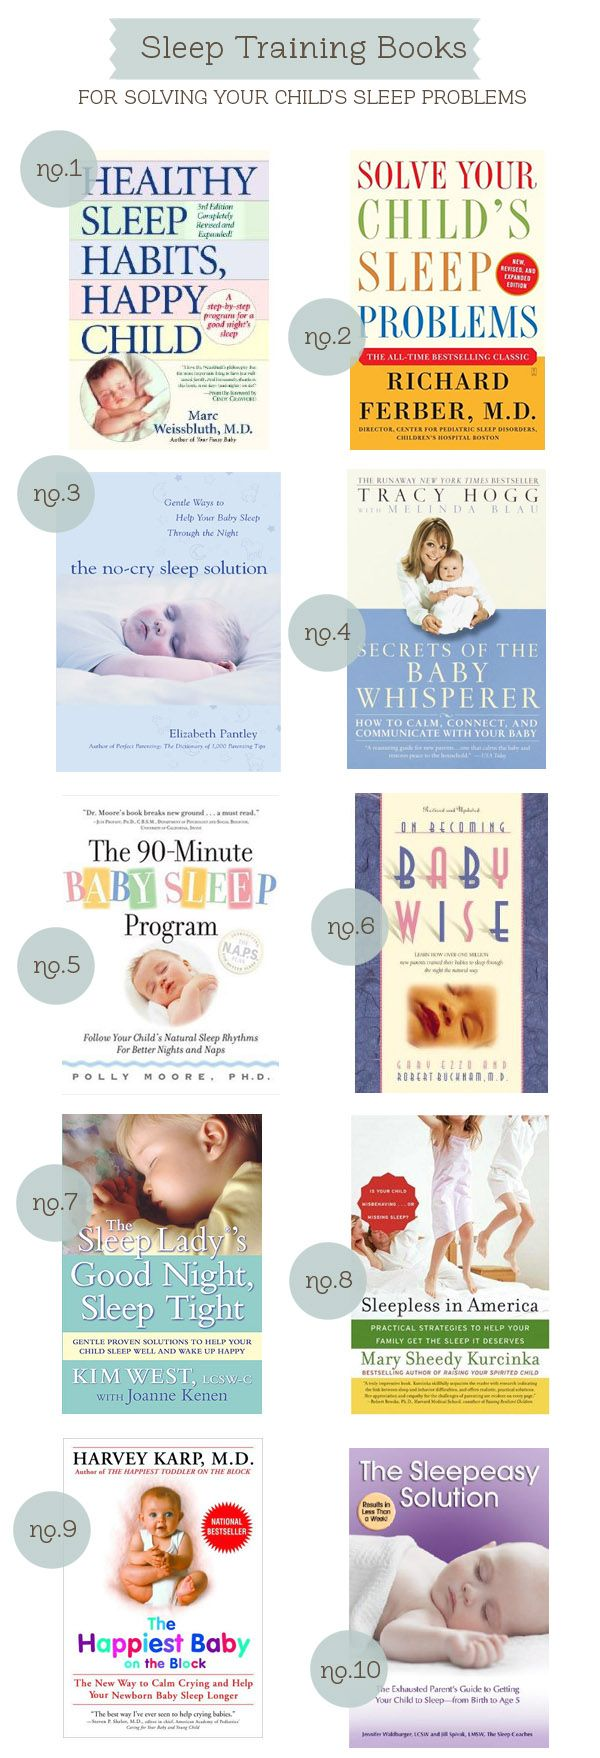 Sleep Training Books | hellobee.com  I hope baby E is a good sleeper, but I'm pinning just in case.